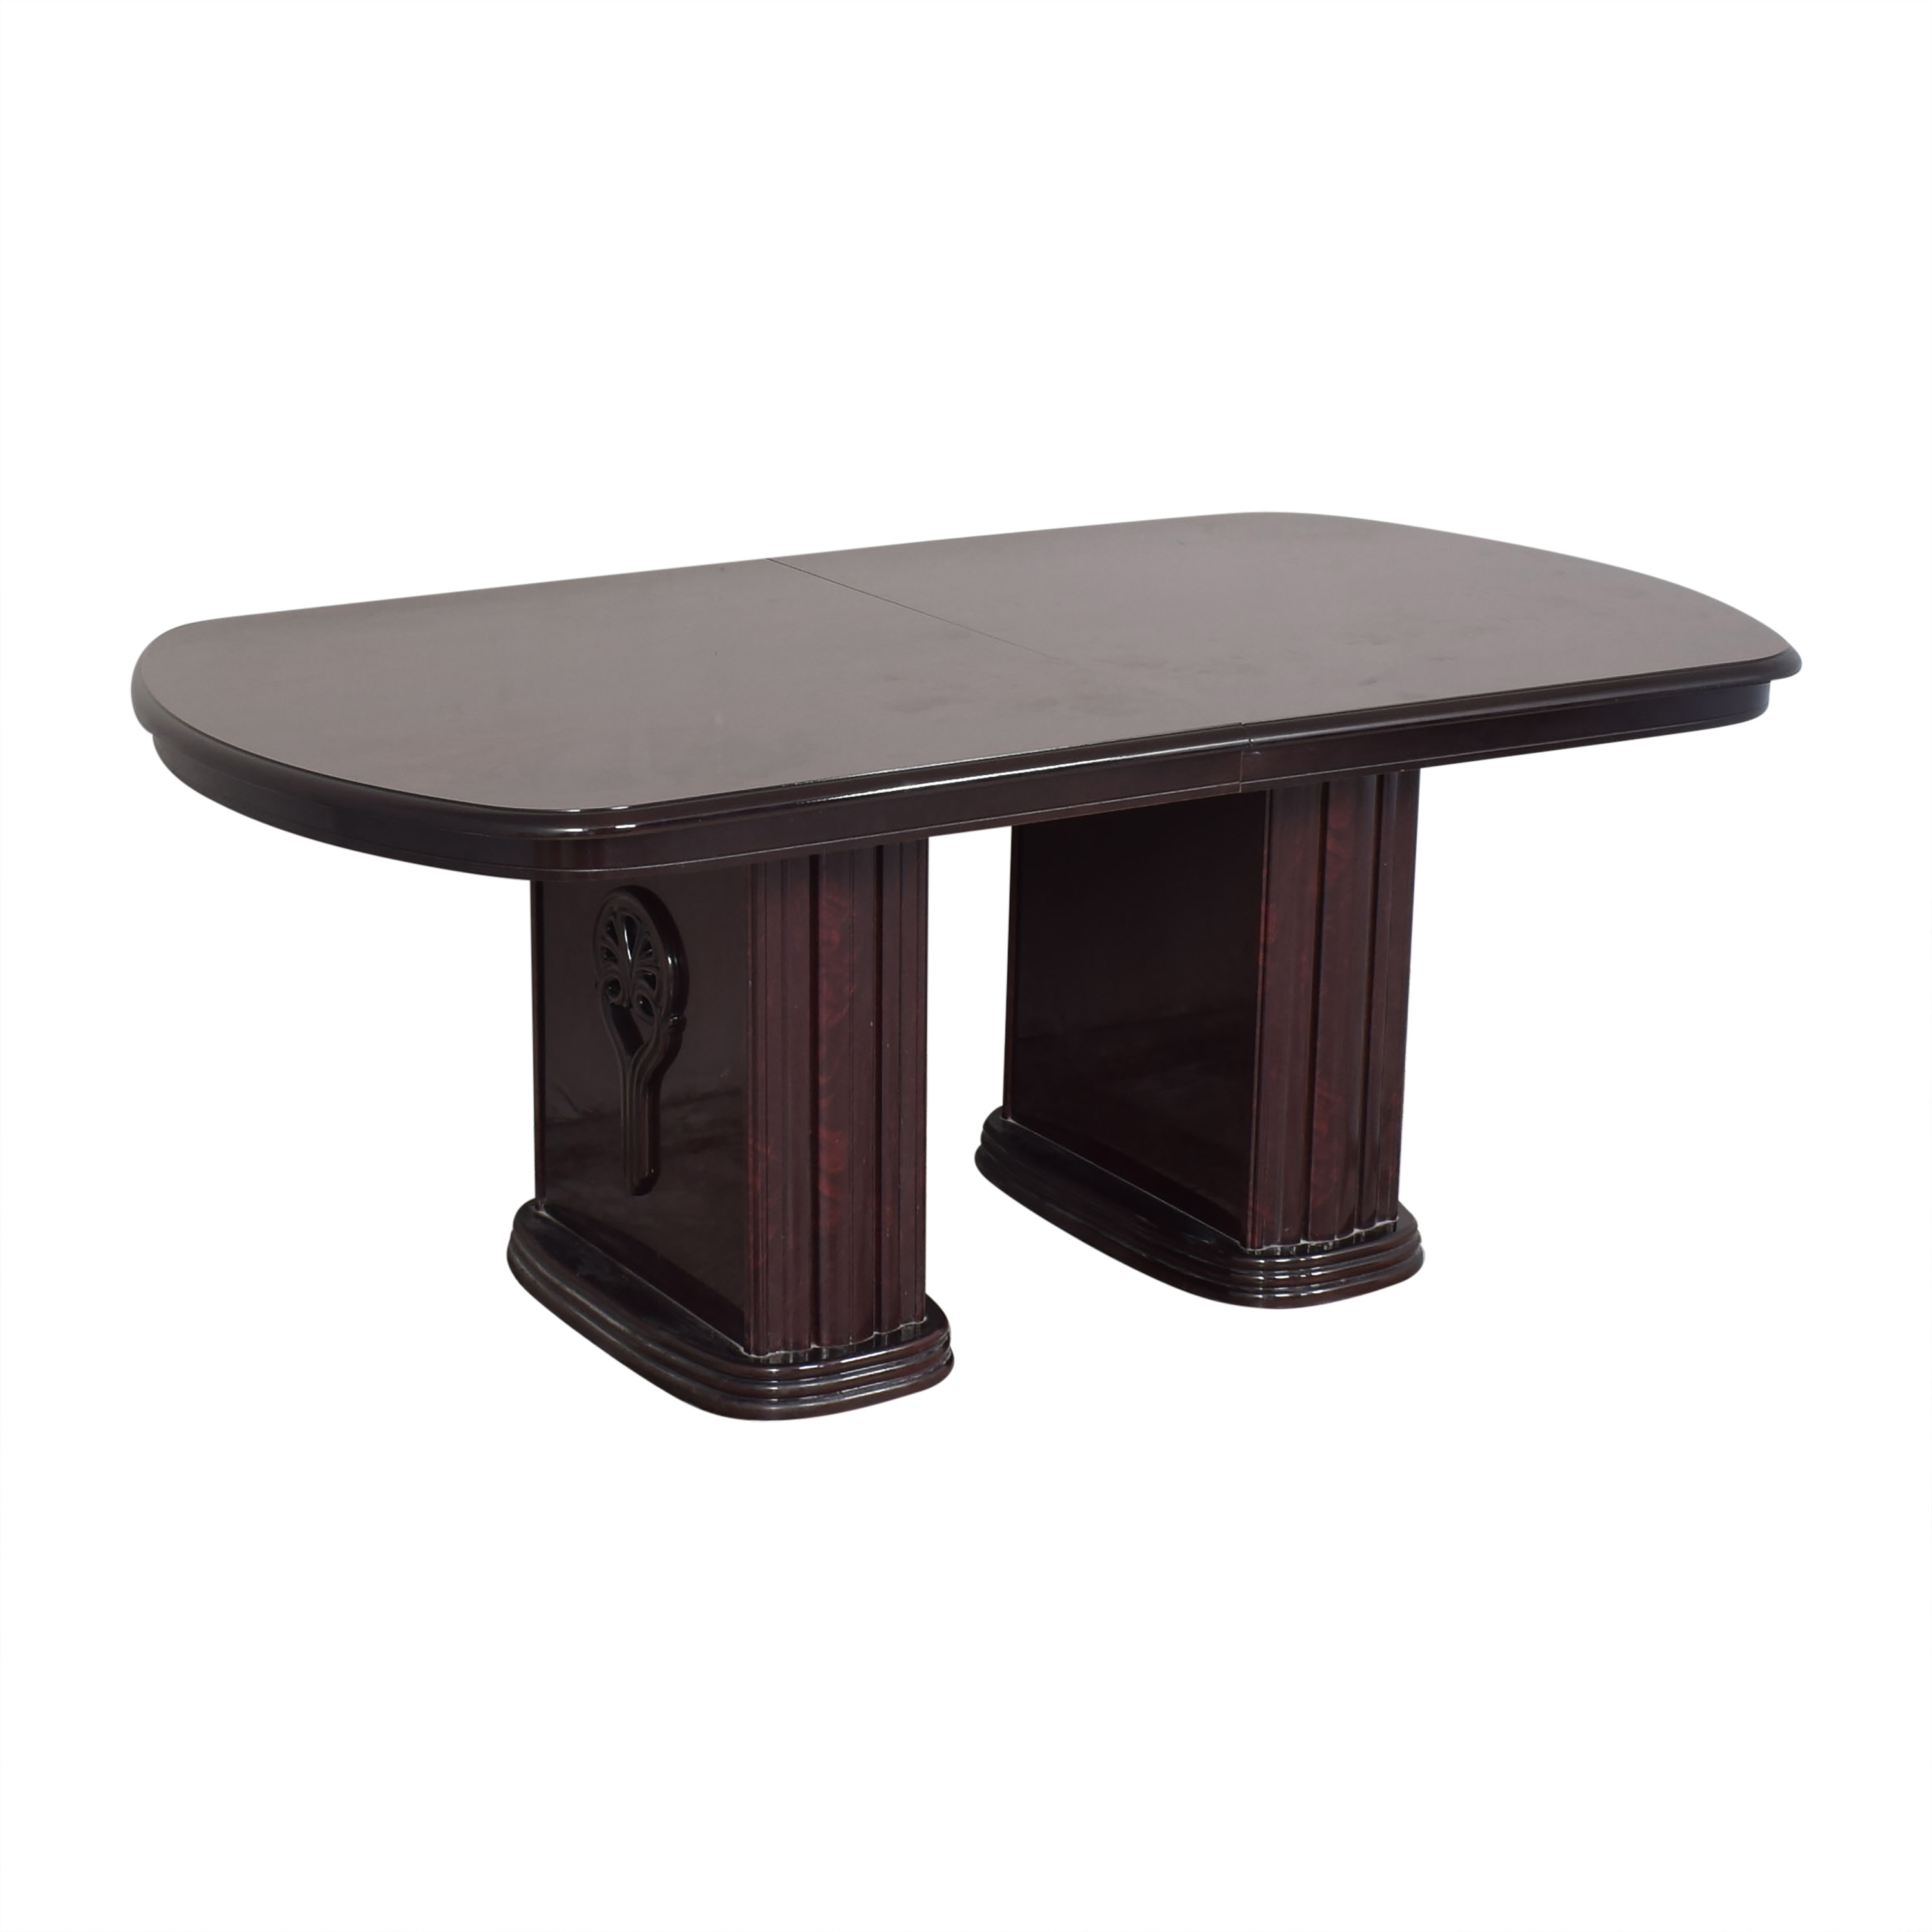 Double Column Base Dining Table second hand